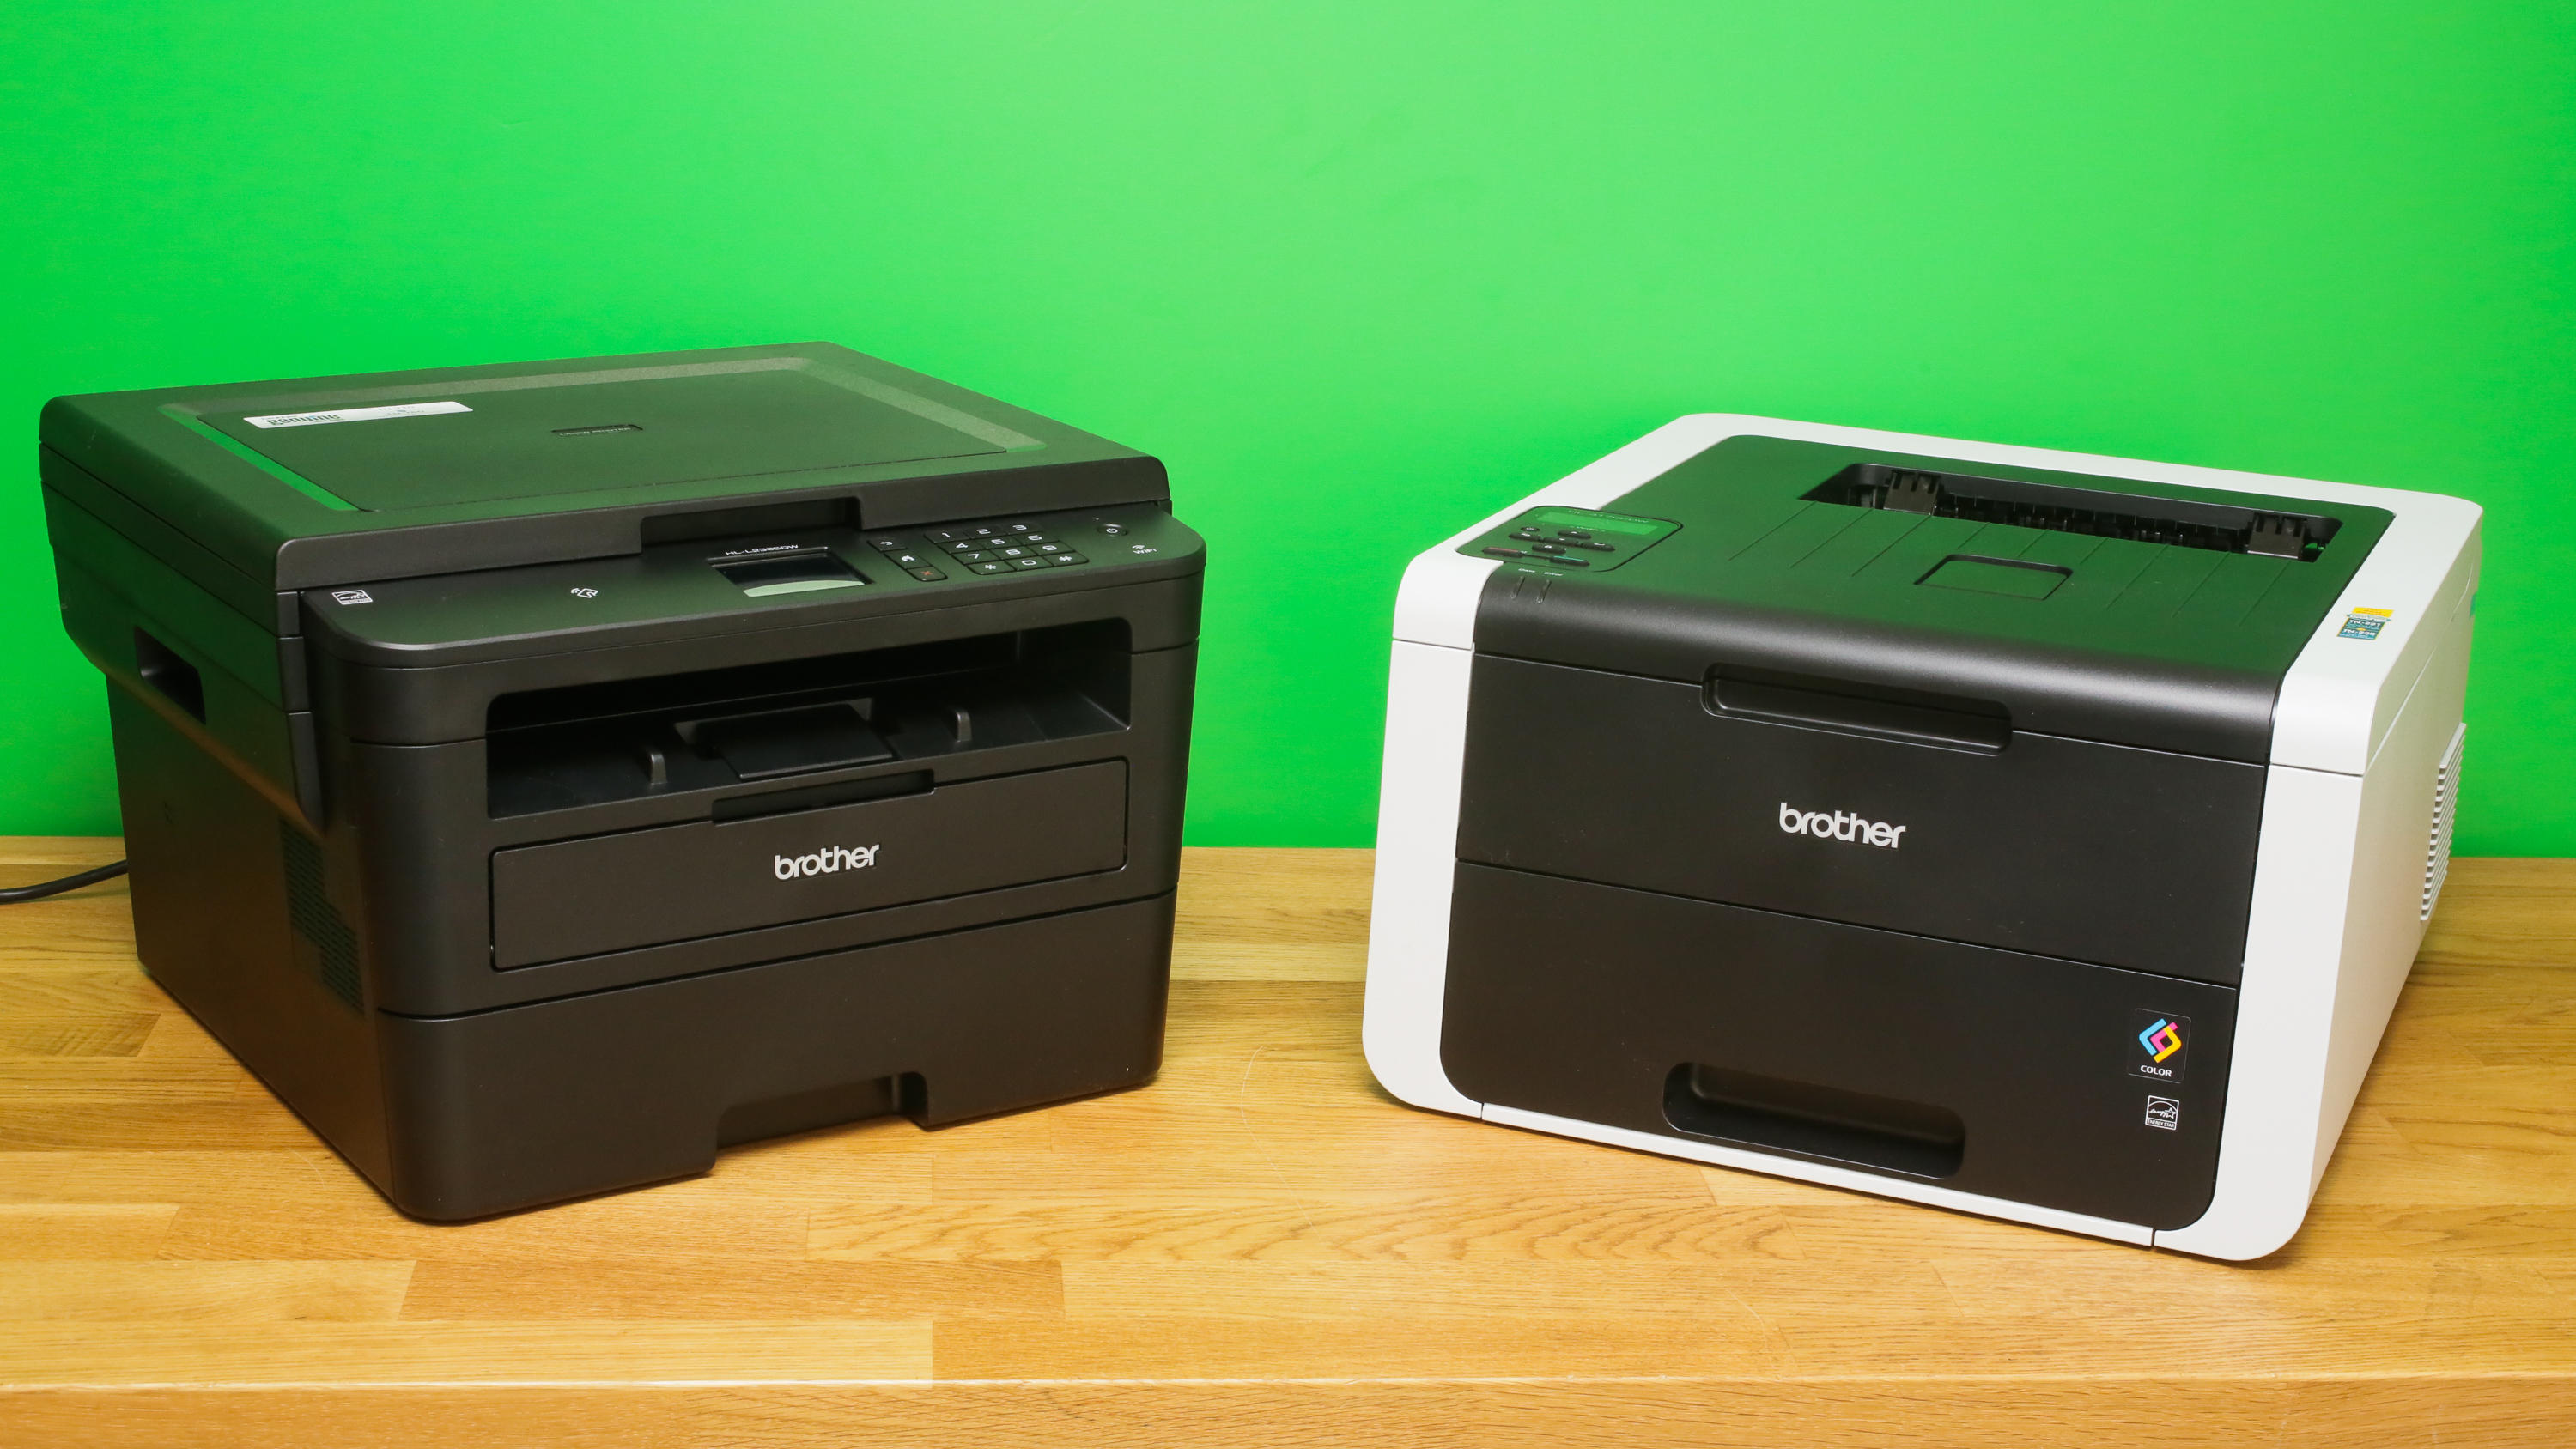 10-brother-hl-3170cdw-digital-color-printer